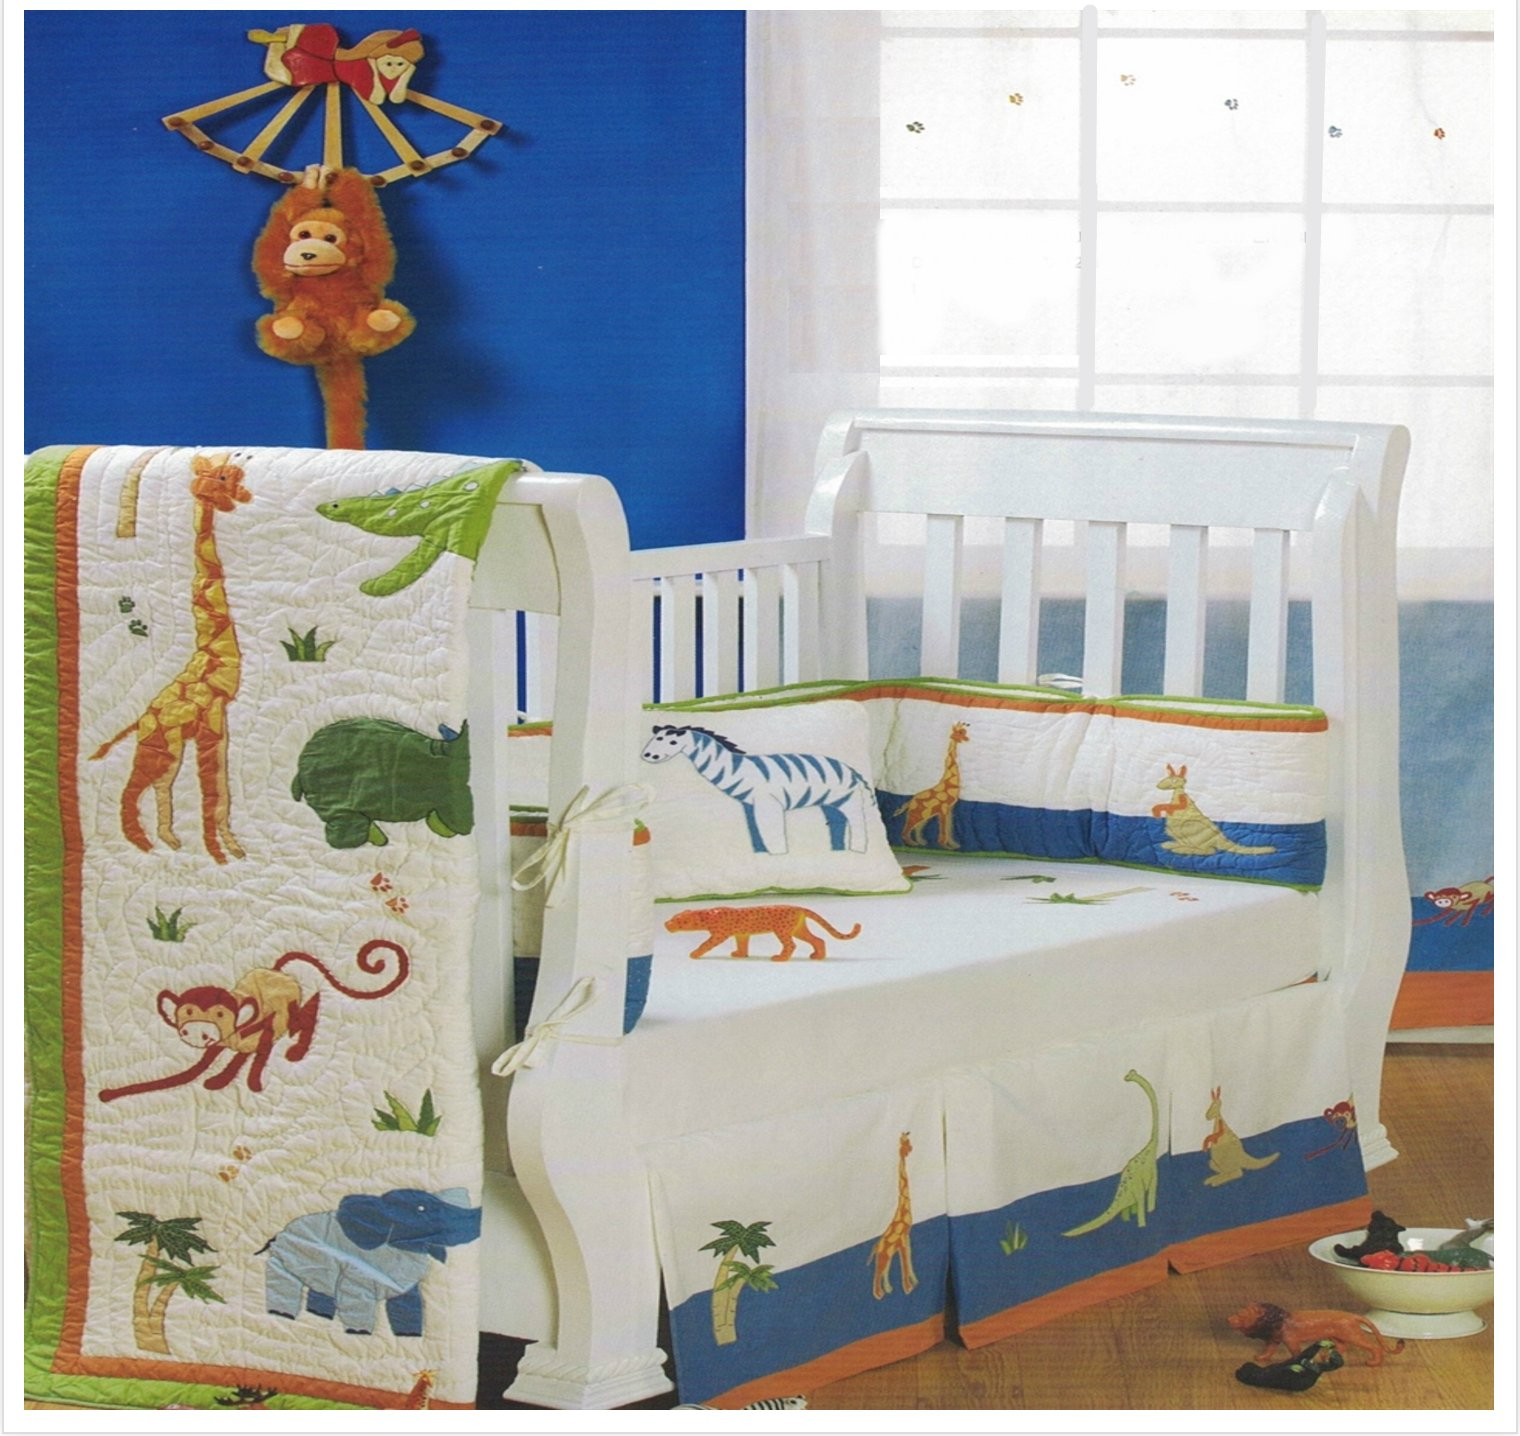 Baby Bedding Crib Sets Boy, 5 Pieces Includes Quilt, Bumper, Pillow, Bed Skirt and Fitted Sheet, Super Soft, With Appliques, 100% India Cotton, Jungle Theme